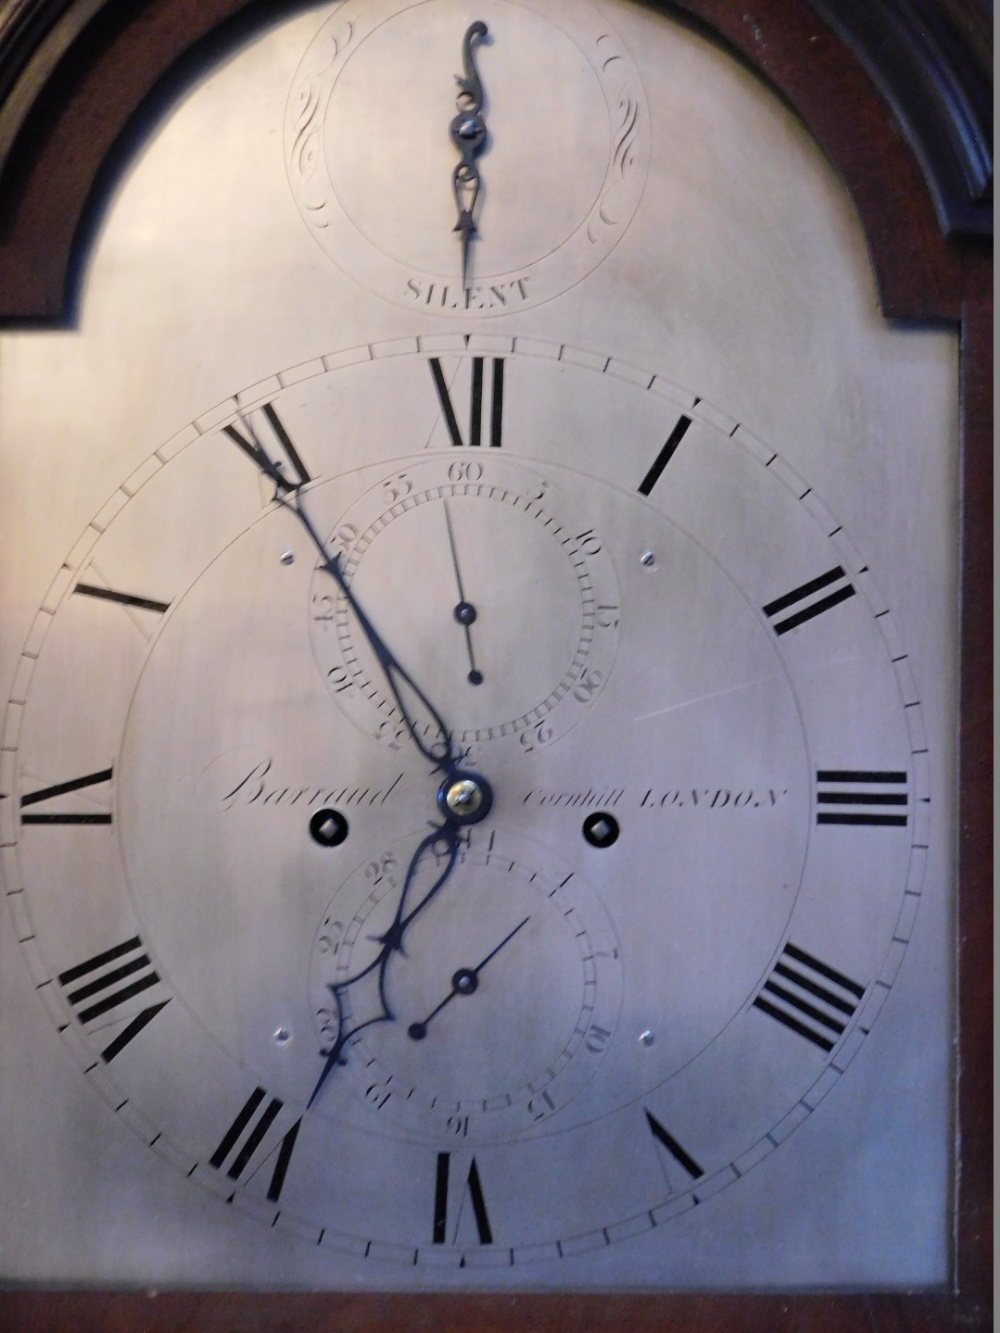 Barraud of Cornhill, London. A George III mahogany longcase clock, the arched silver dial with - Image 2 of 4